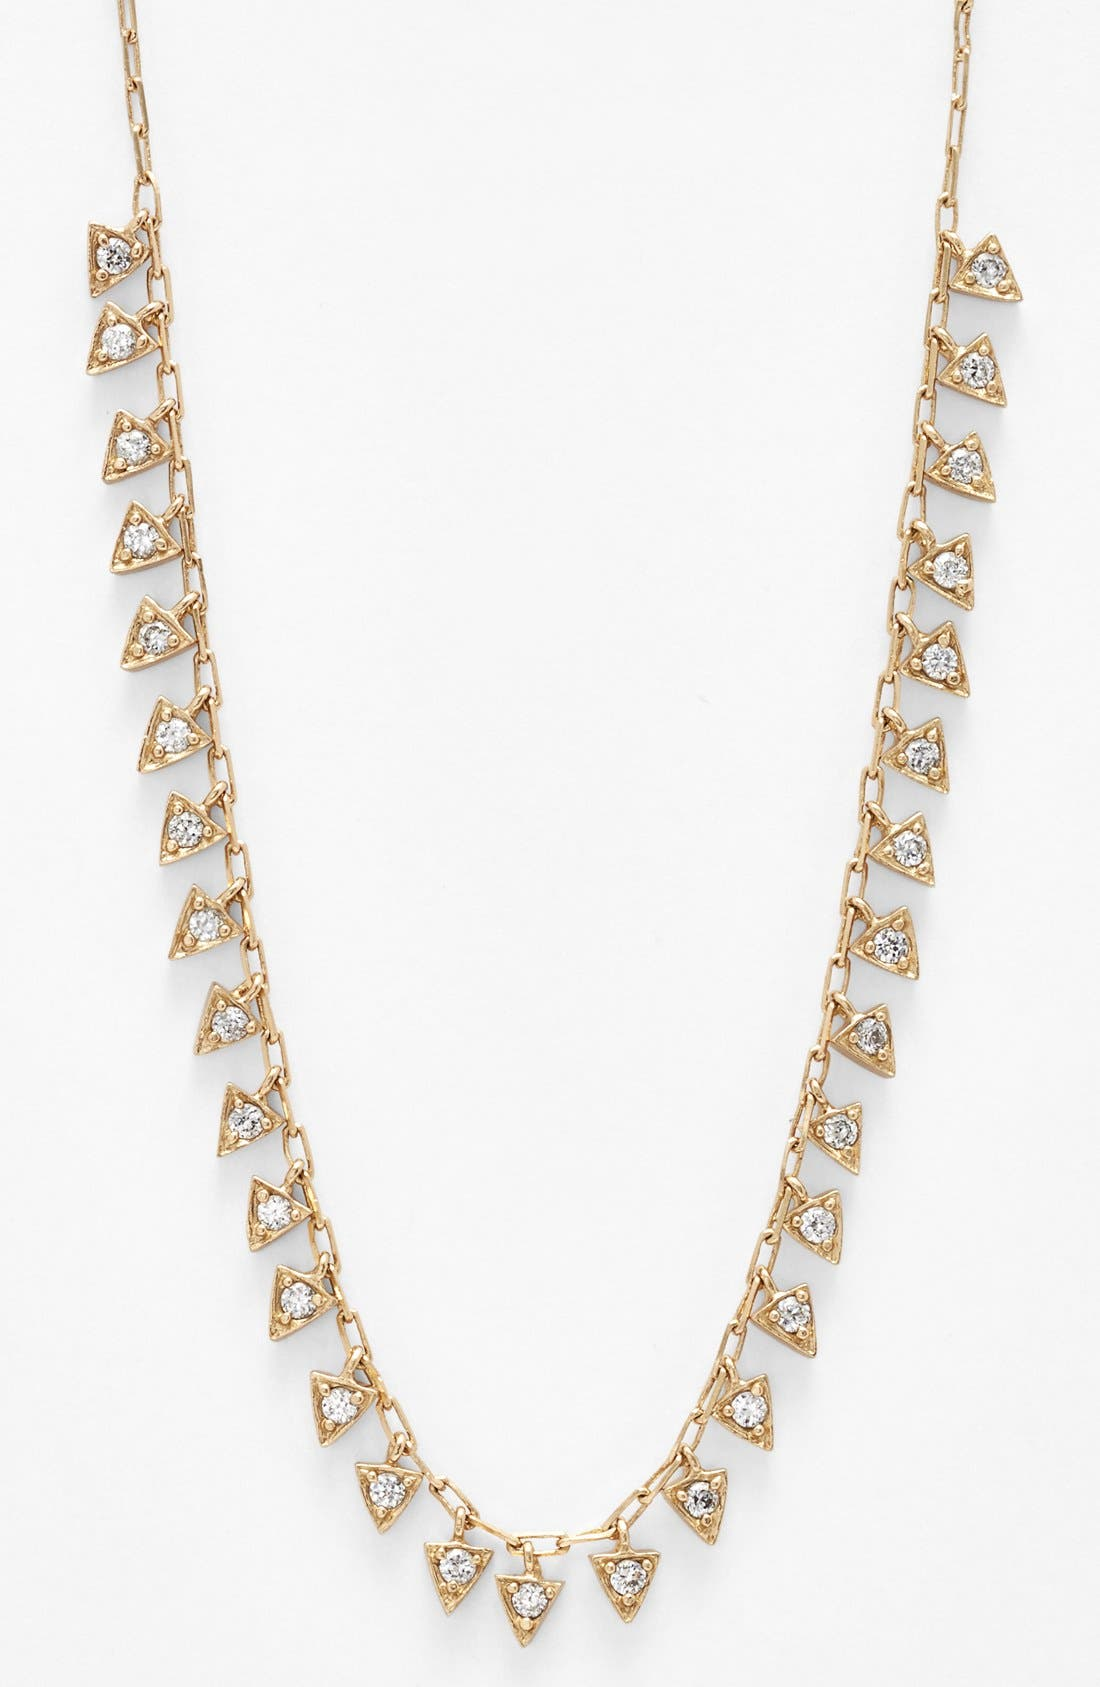 Alternate Image 1 Selected - Melinda Maria 'Pyramid - Mini Fringe' Frontal Necklace